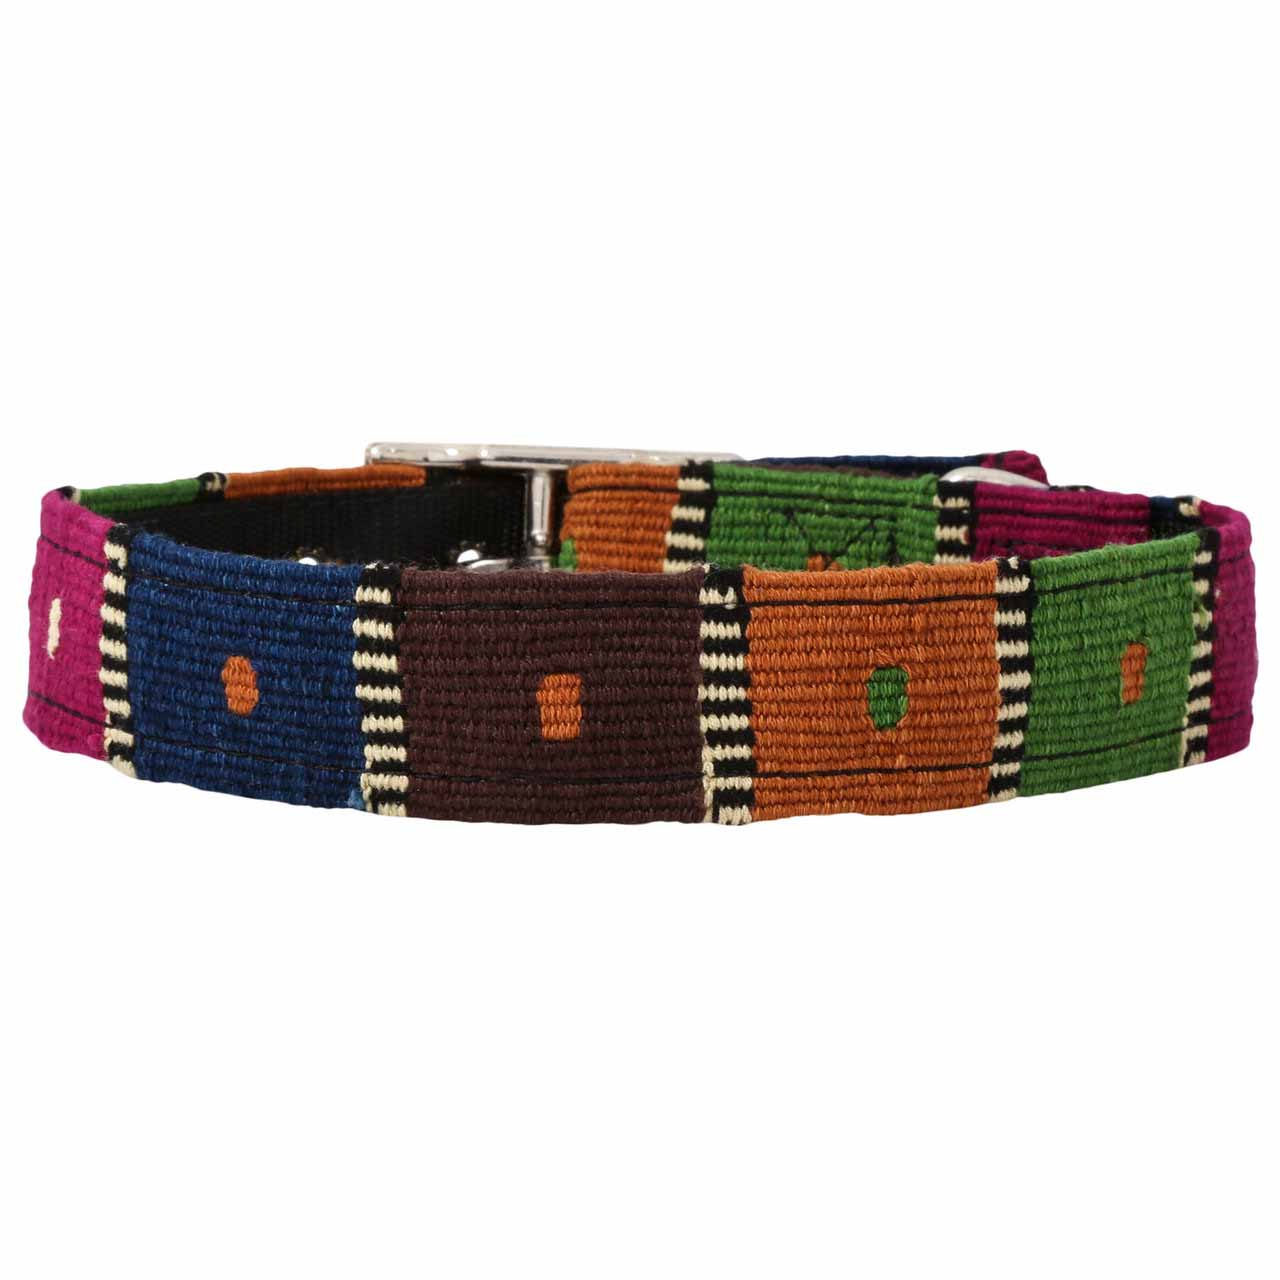 MAYA Buckle Dog Collar - Checkers